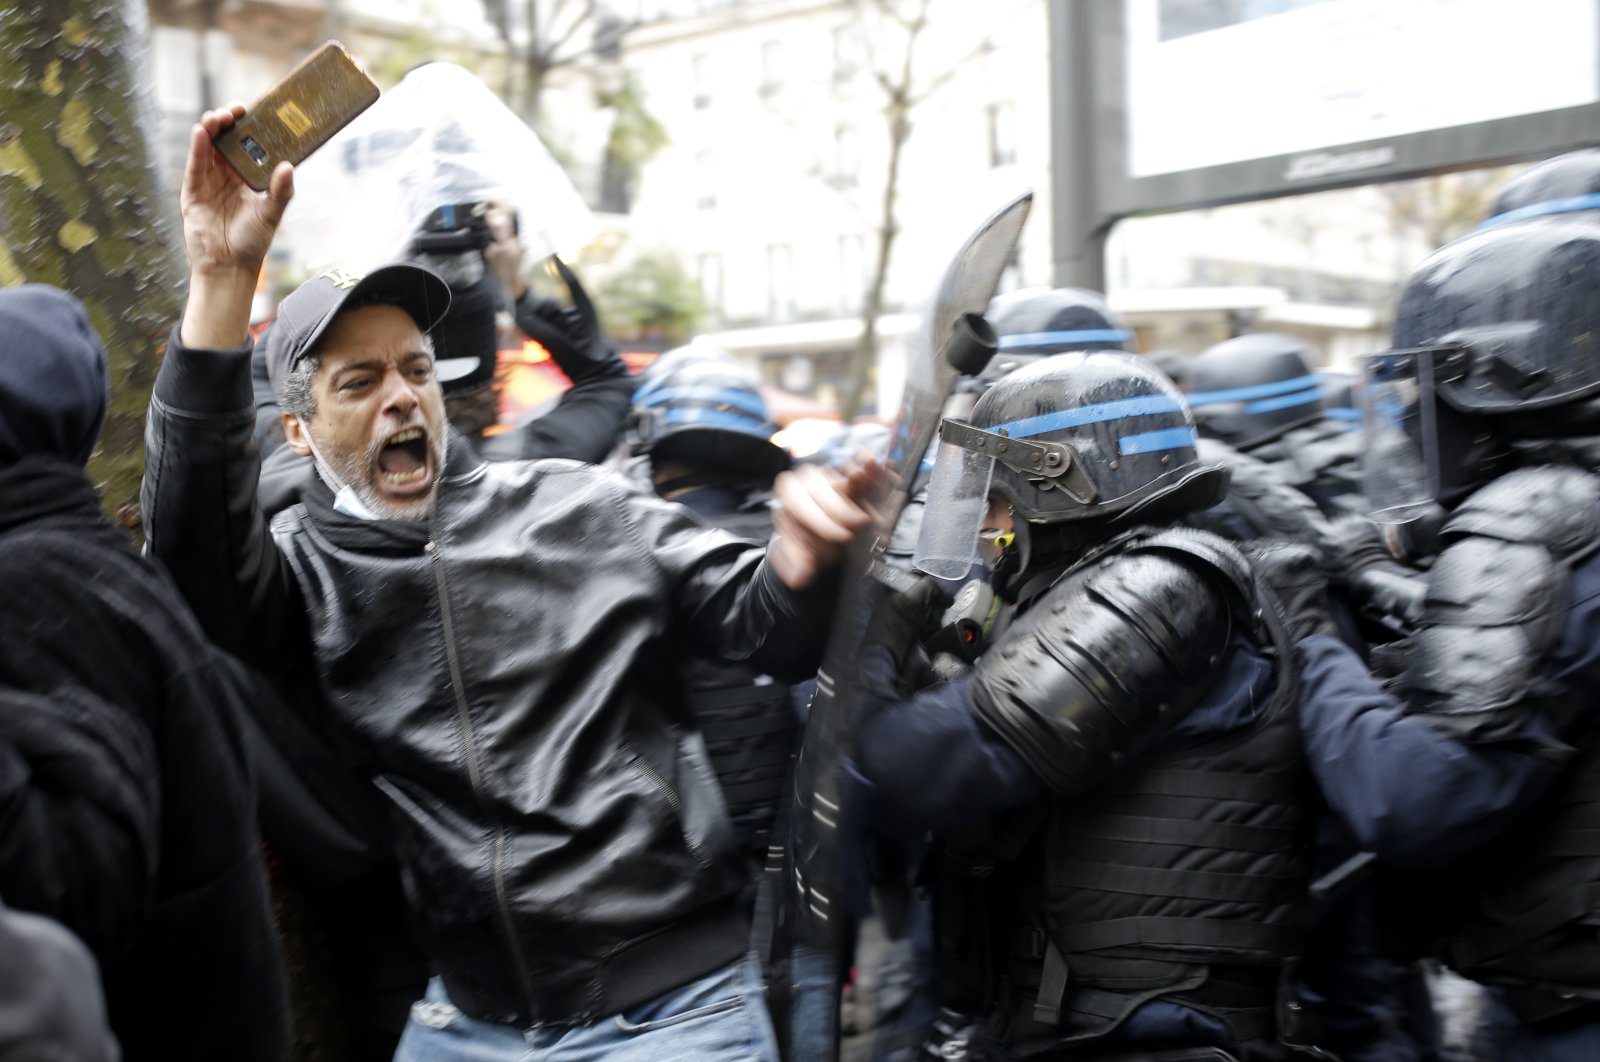 Riot police officers charge a man holding his phone during a protest in Paris, France, Dec. 12, 2020. (AP Photo)